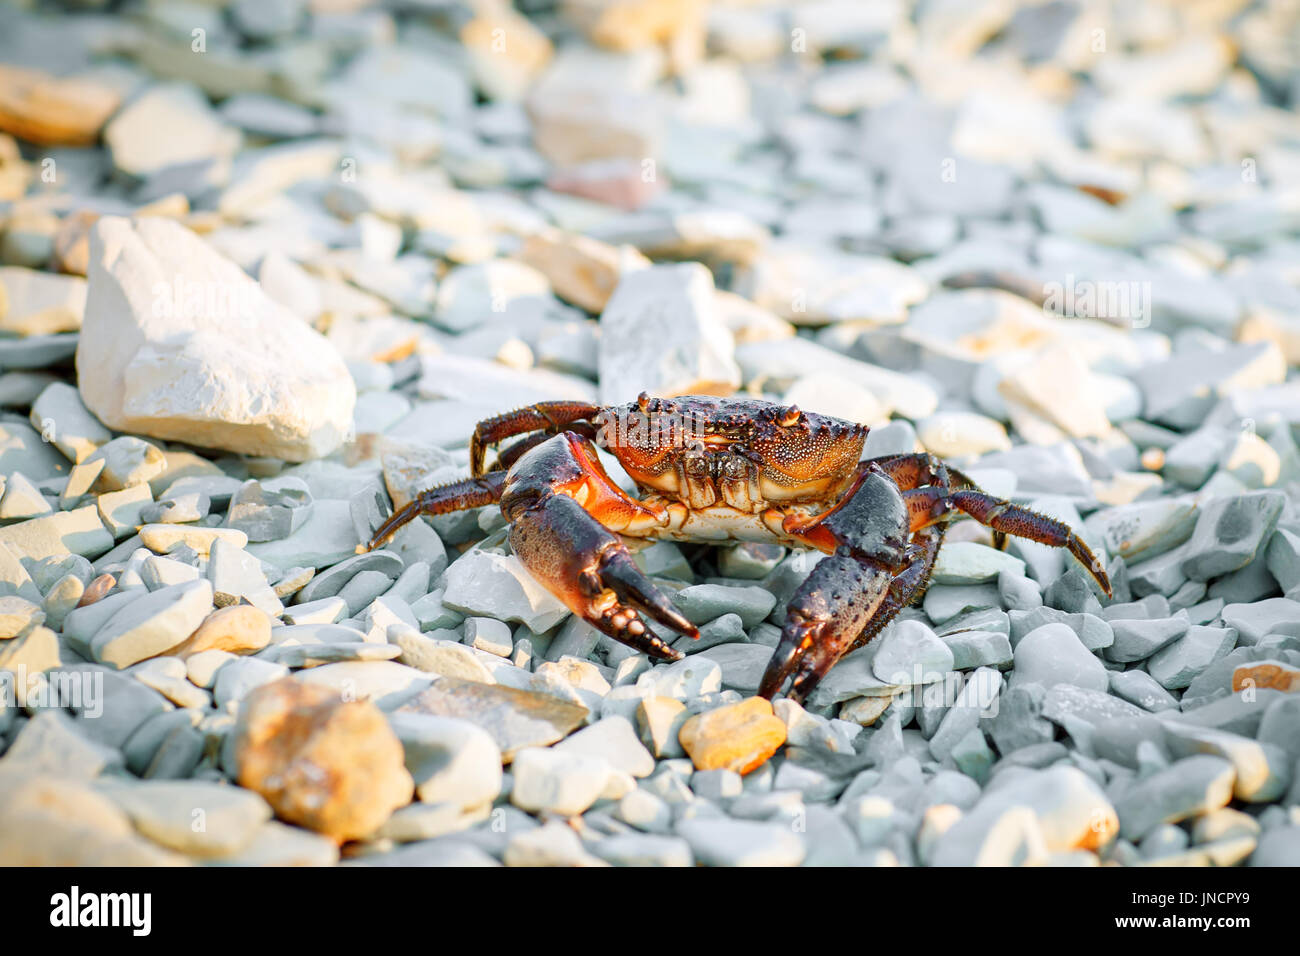 Sea crab on the rocky shore of the sea. - Stock Image